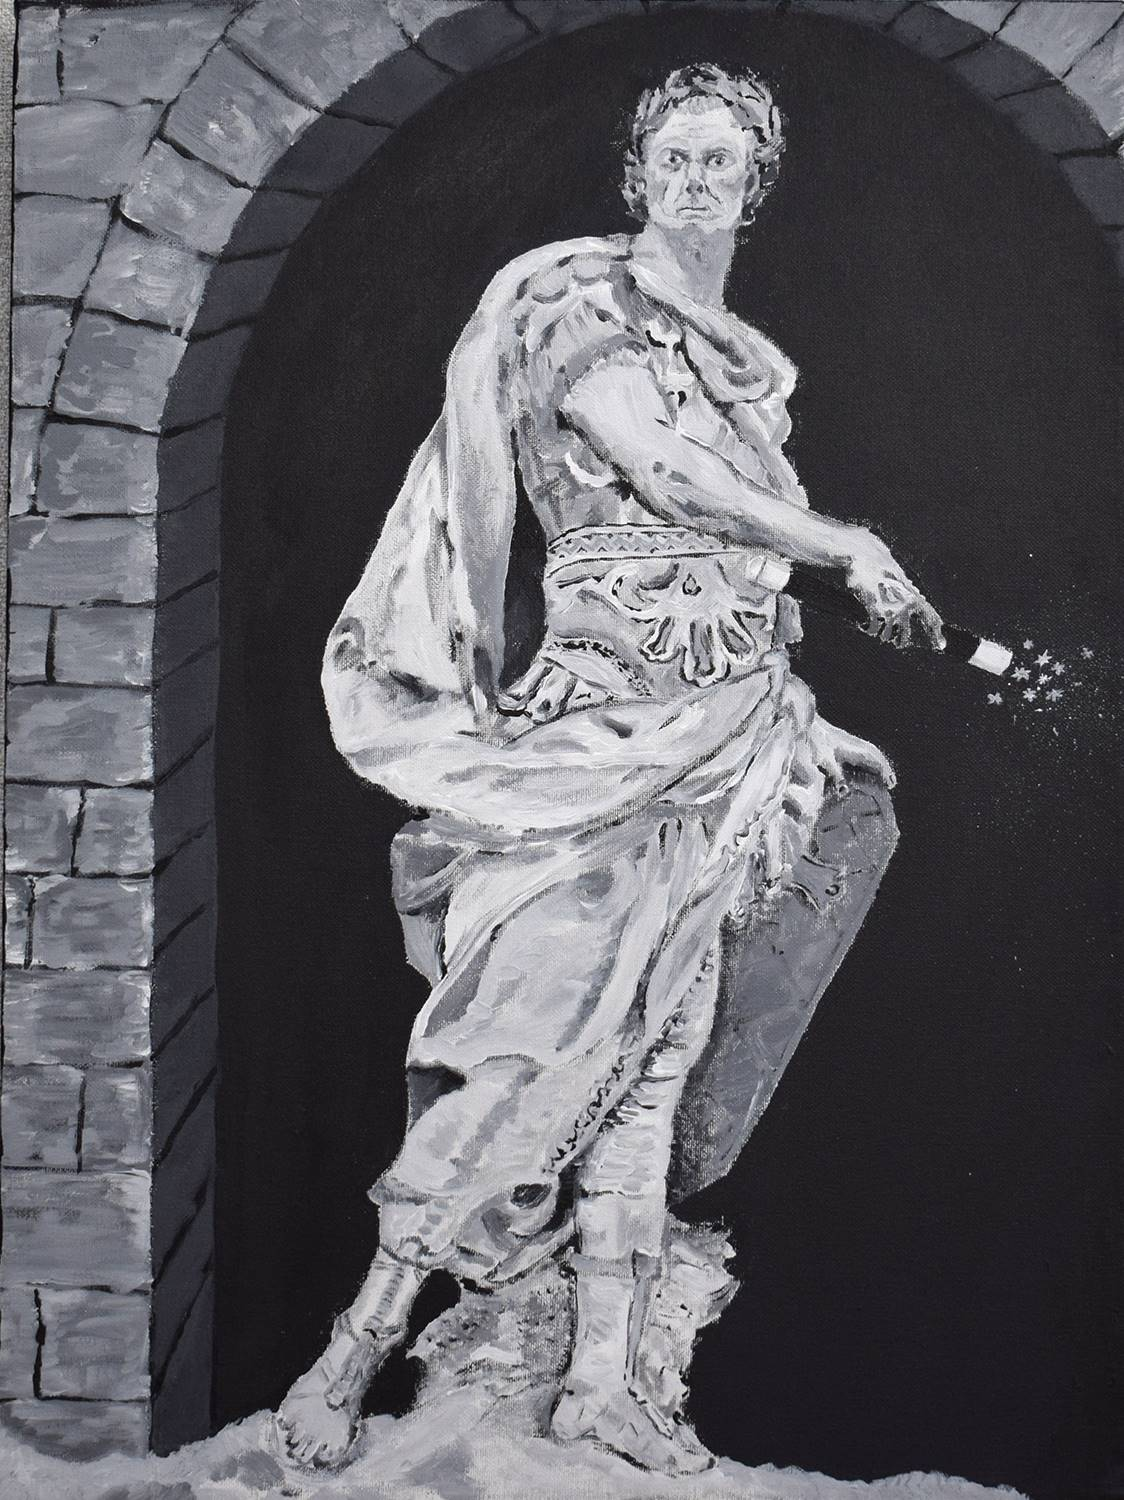 A Roman-style statue of a man in front of a bricked archway, in black and white.